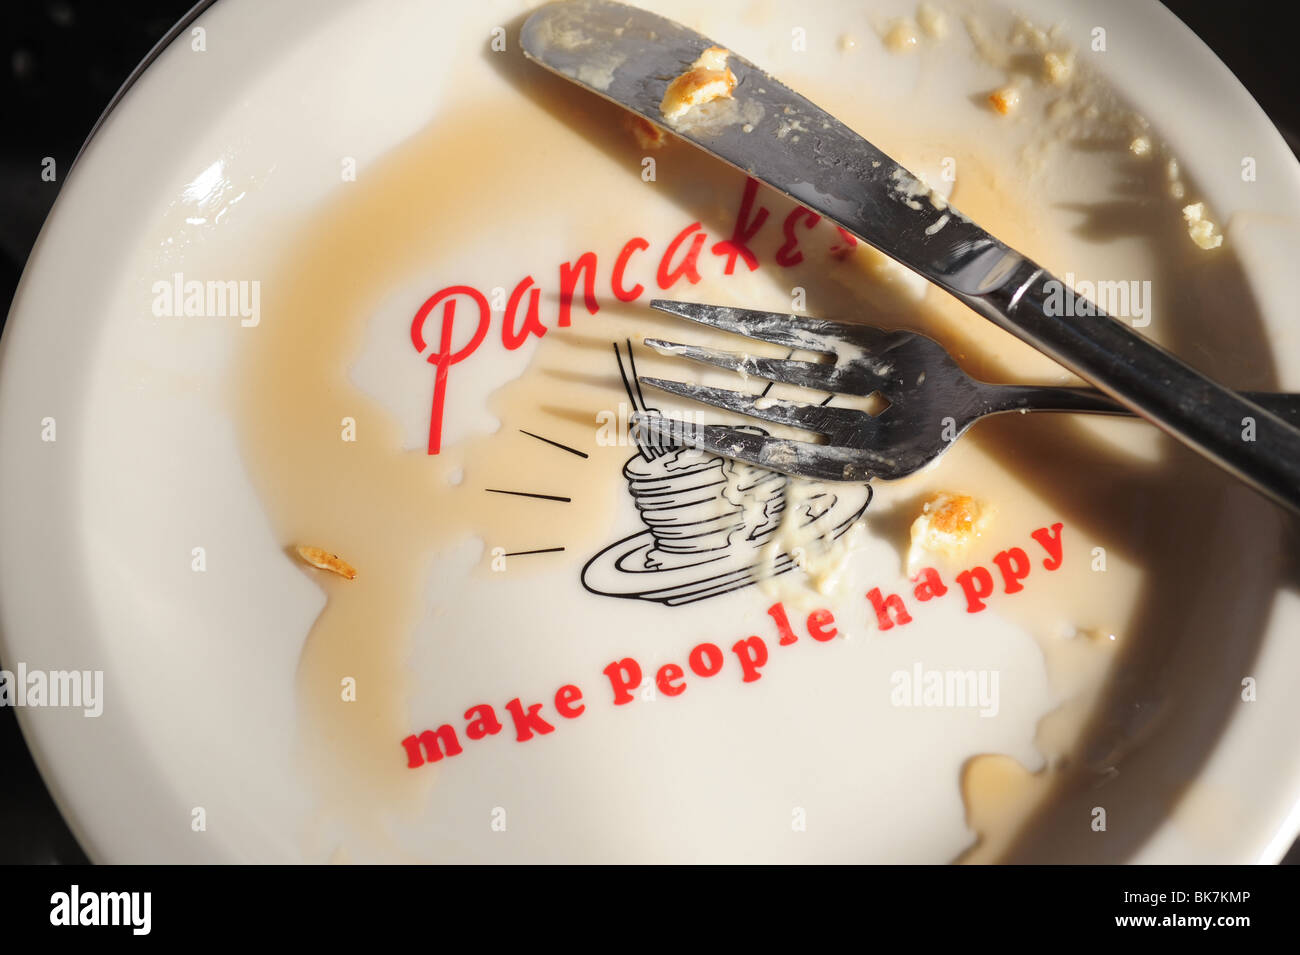 empty-plate-for-pancakes-knife-and-fork-